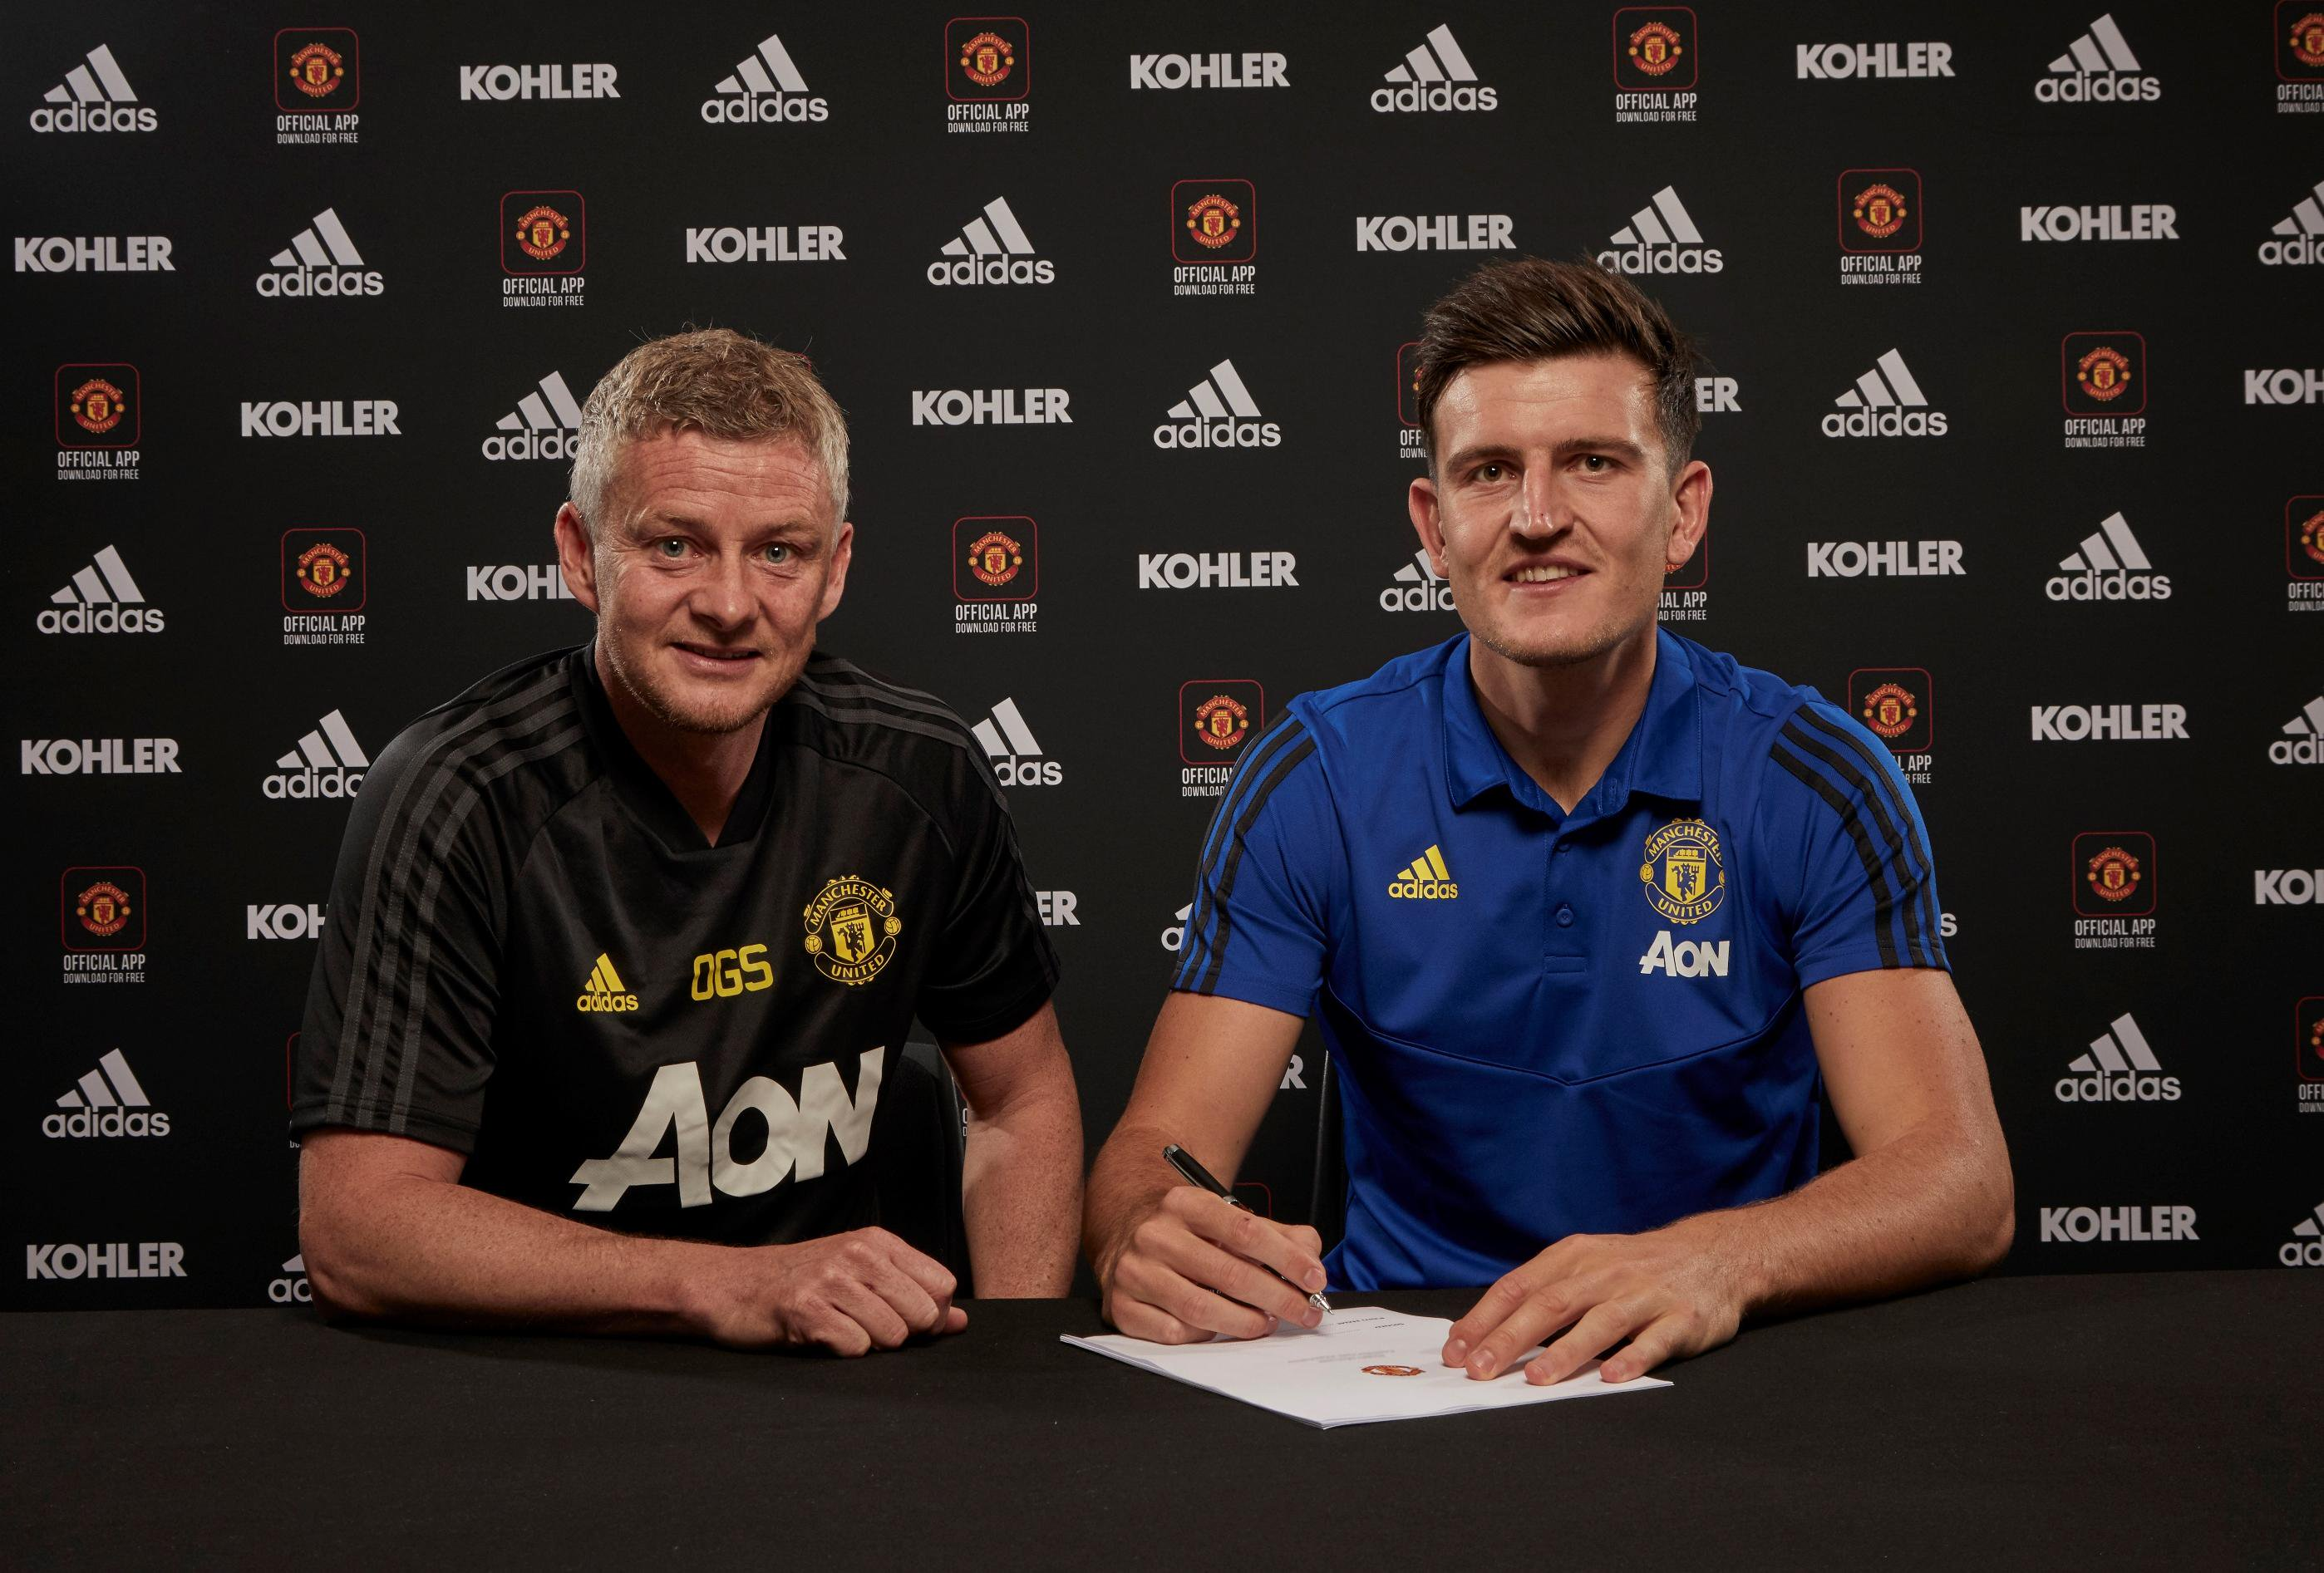 Man United complete signing of £80m Leicester defender Harry Maguire